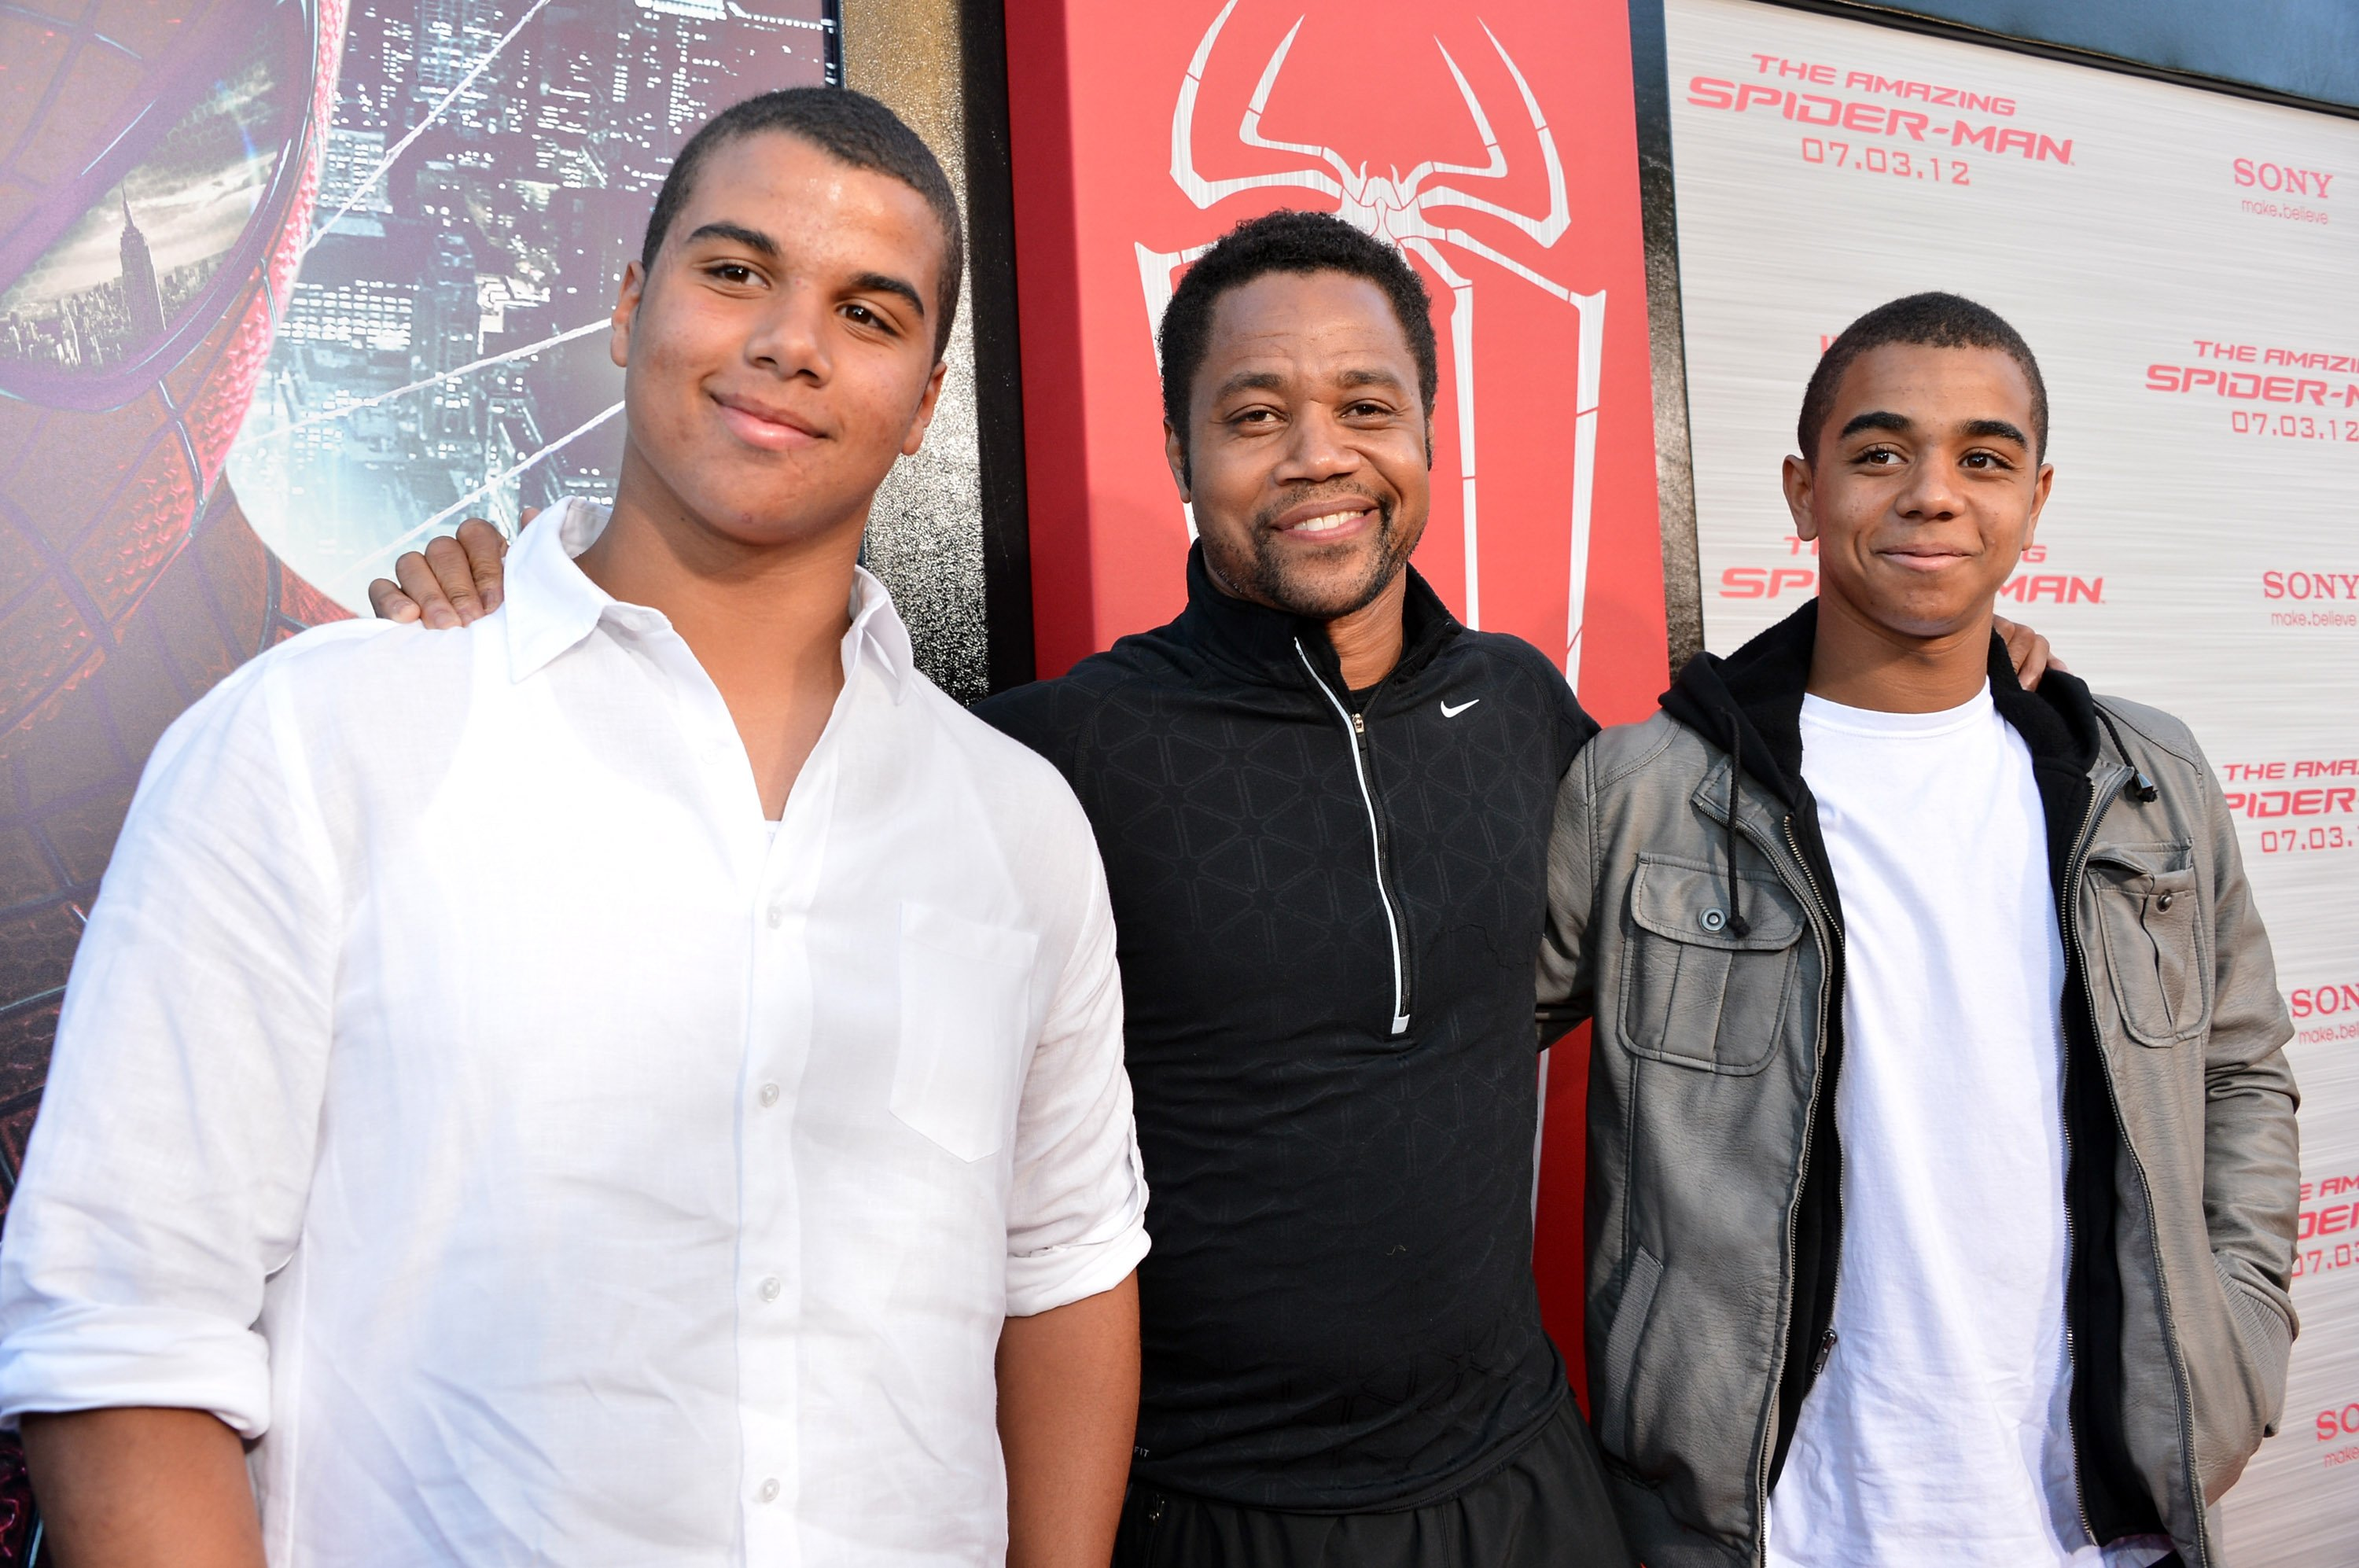 """Mason Gooding, Cuba Gooding Jr., and Spencer Gooding arrive at the premiere of Columbia Pictures' """"The Amazing Spider-Man"""", 2012.   Photo: GettyImages"""